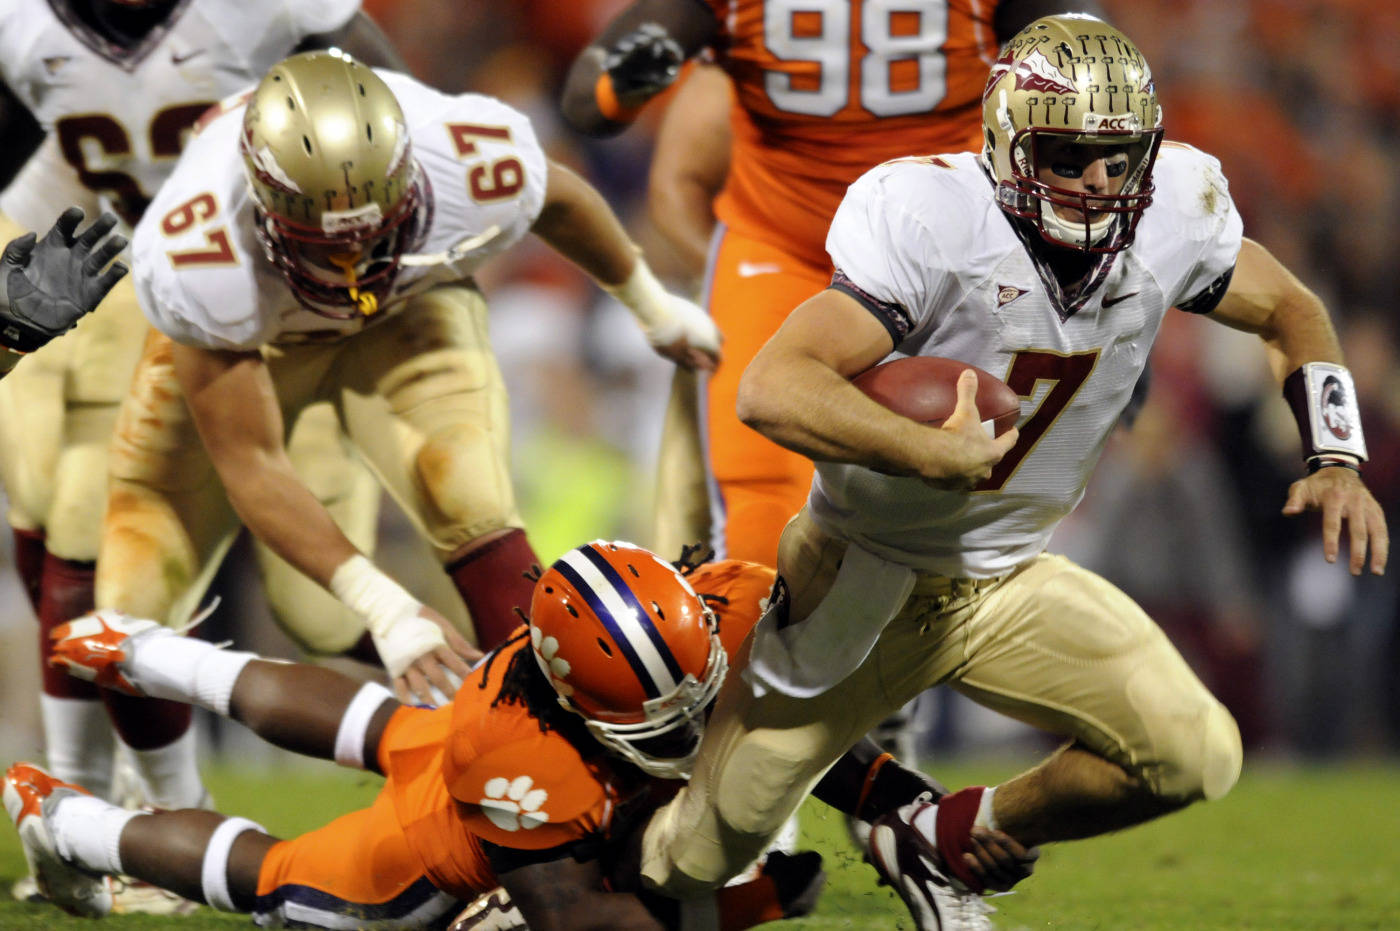 Florida State's quarterback Christian Ponder (7) gets taken down by Clemson's Jamie Cumble (8) during the first half. (AP Photo/Richard Shiro)